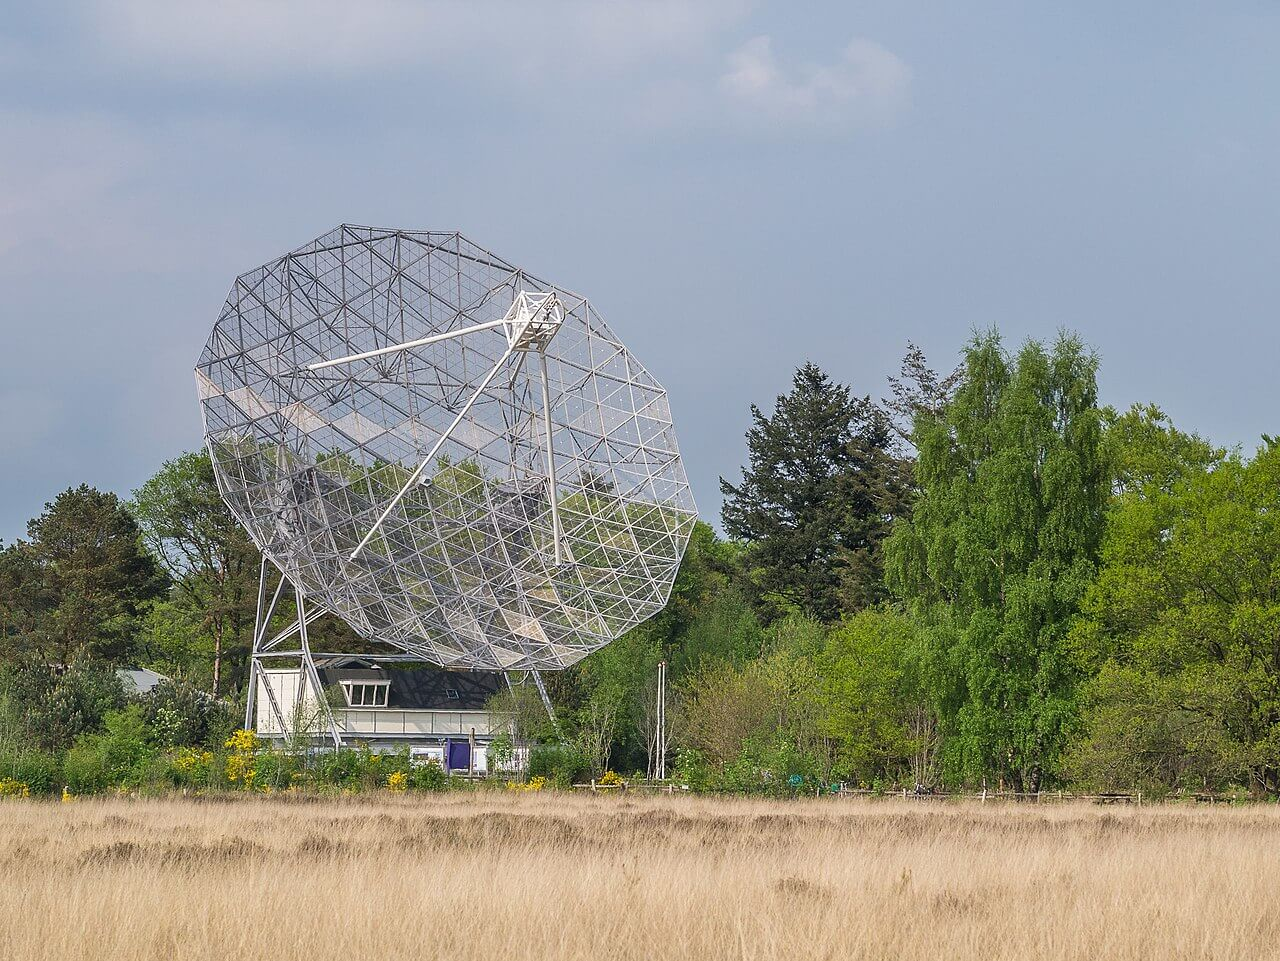 Dwingleloo Satellite Antenna in the Netherlands